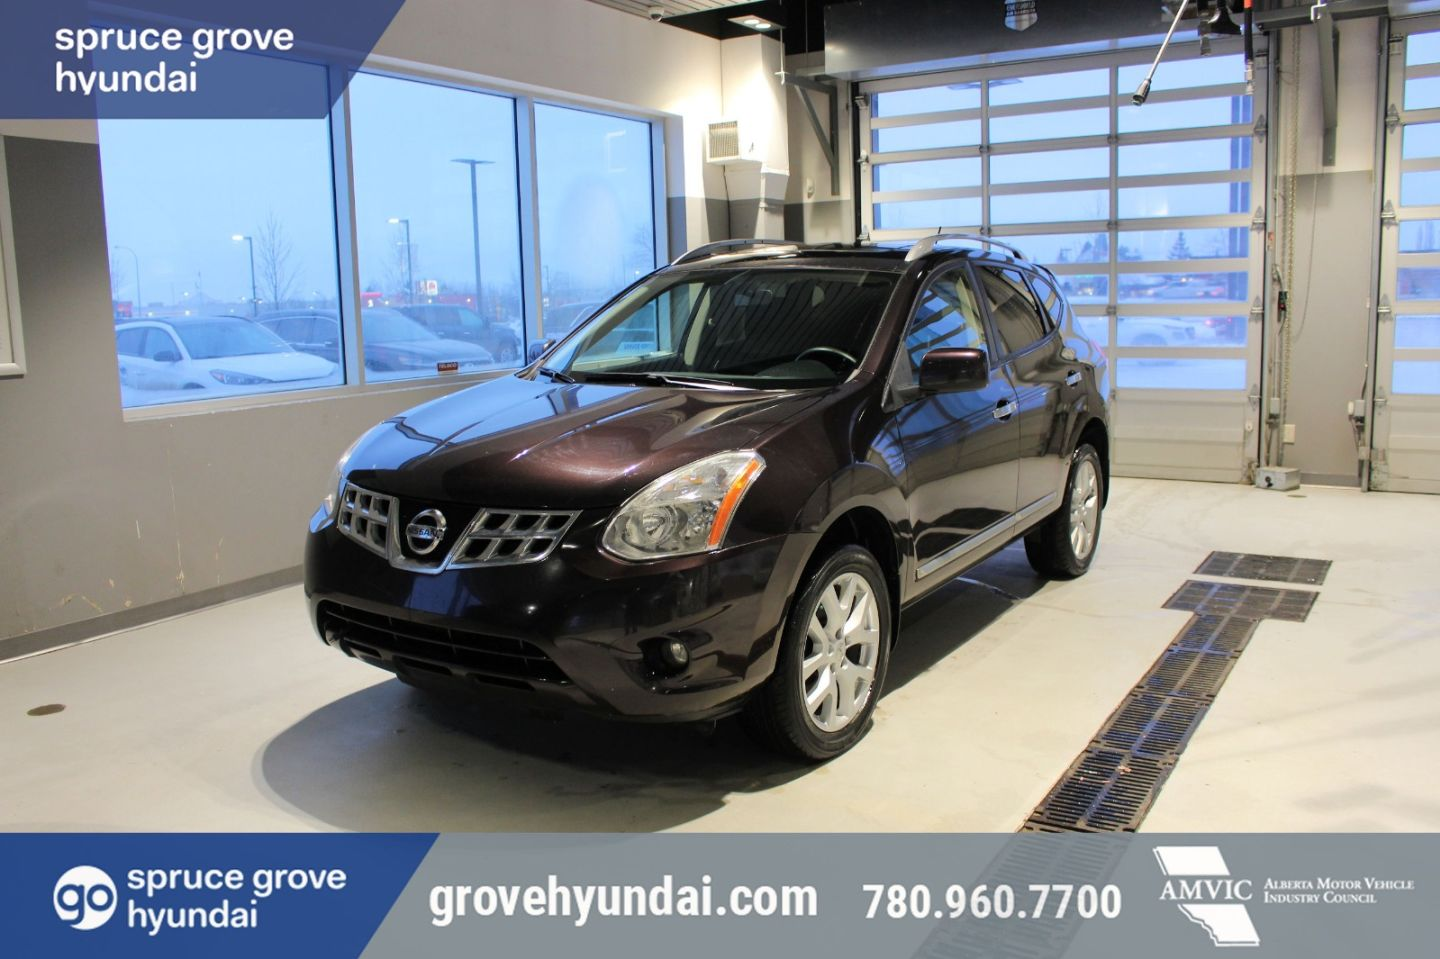 2013 Nissan Rogue SV for sale in Spruce Grove, Alberta